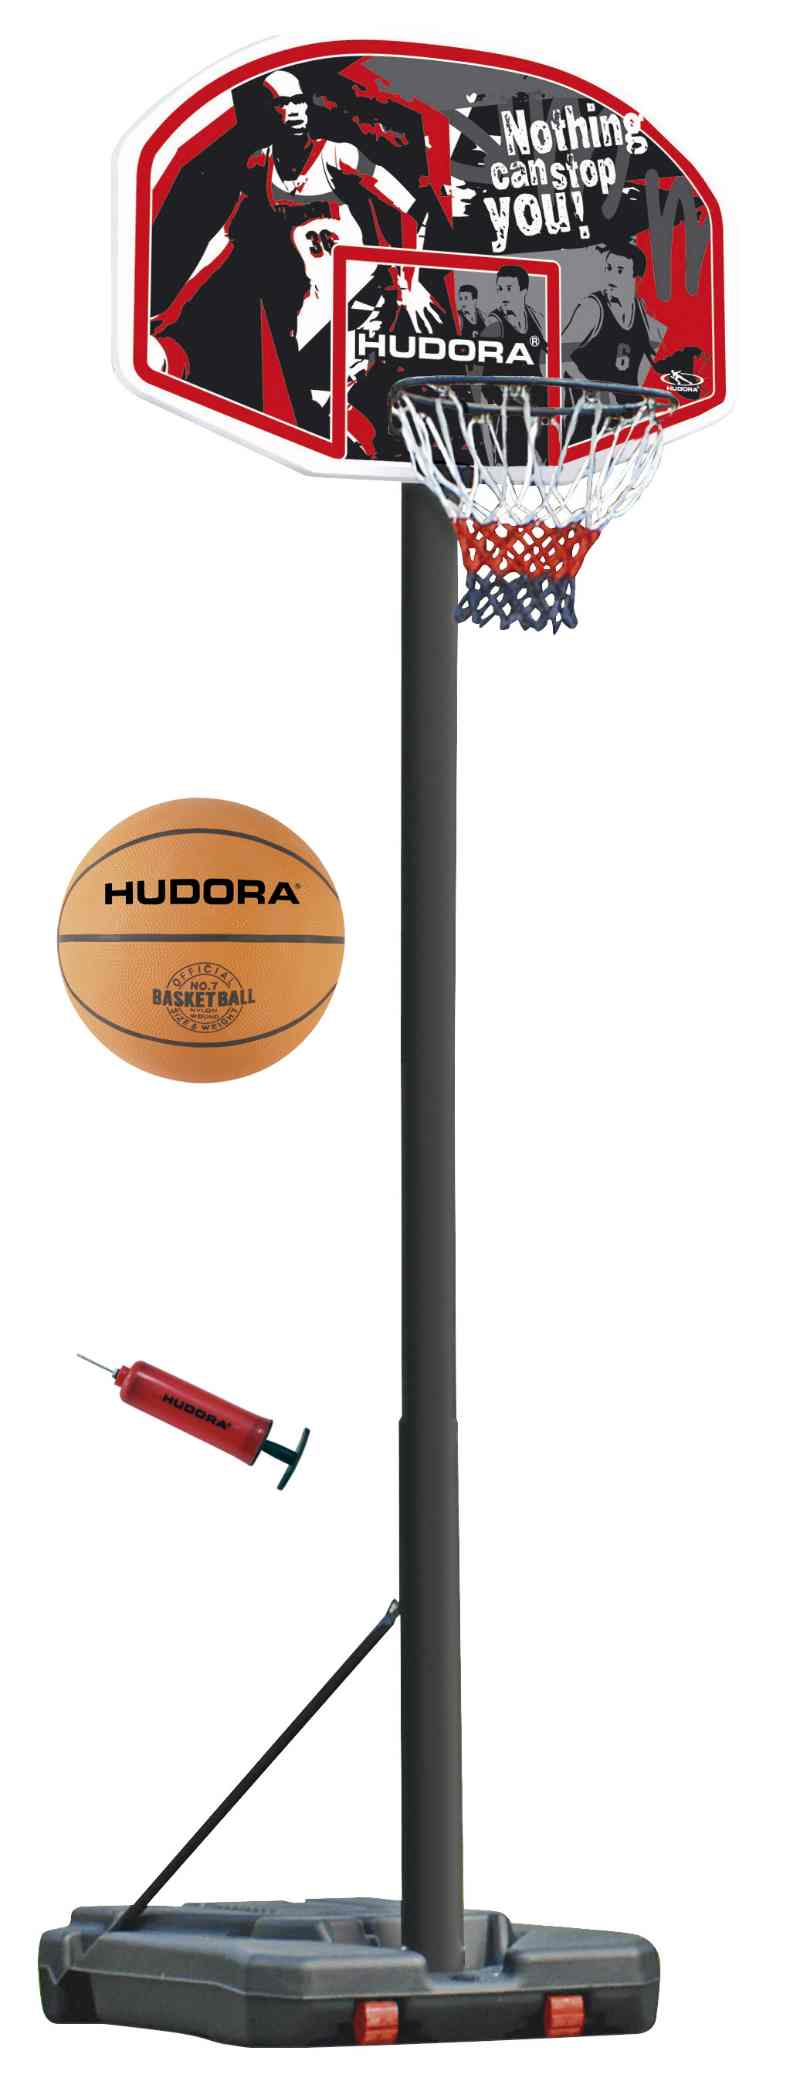 Basketballstaender-Set-incl-Ball-Pumpe-GH-305-cm-Hudora-Chicago-Basketballkorb